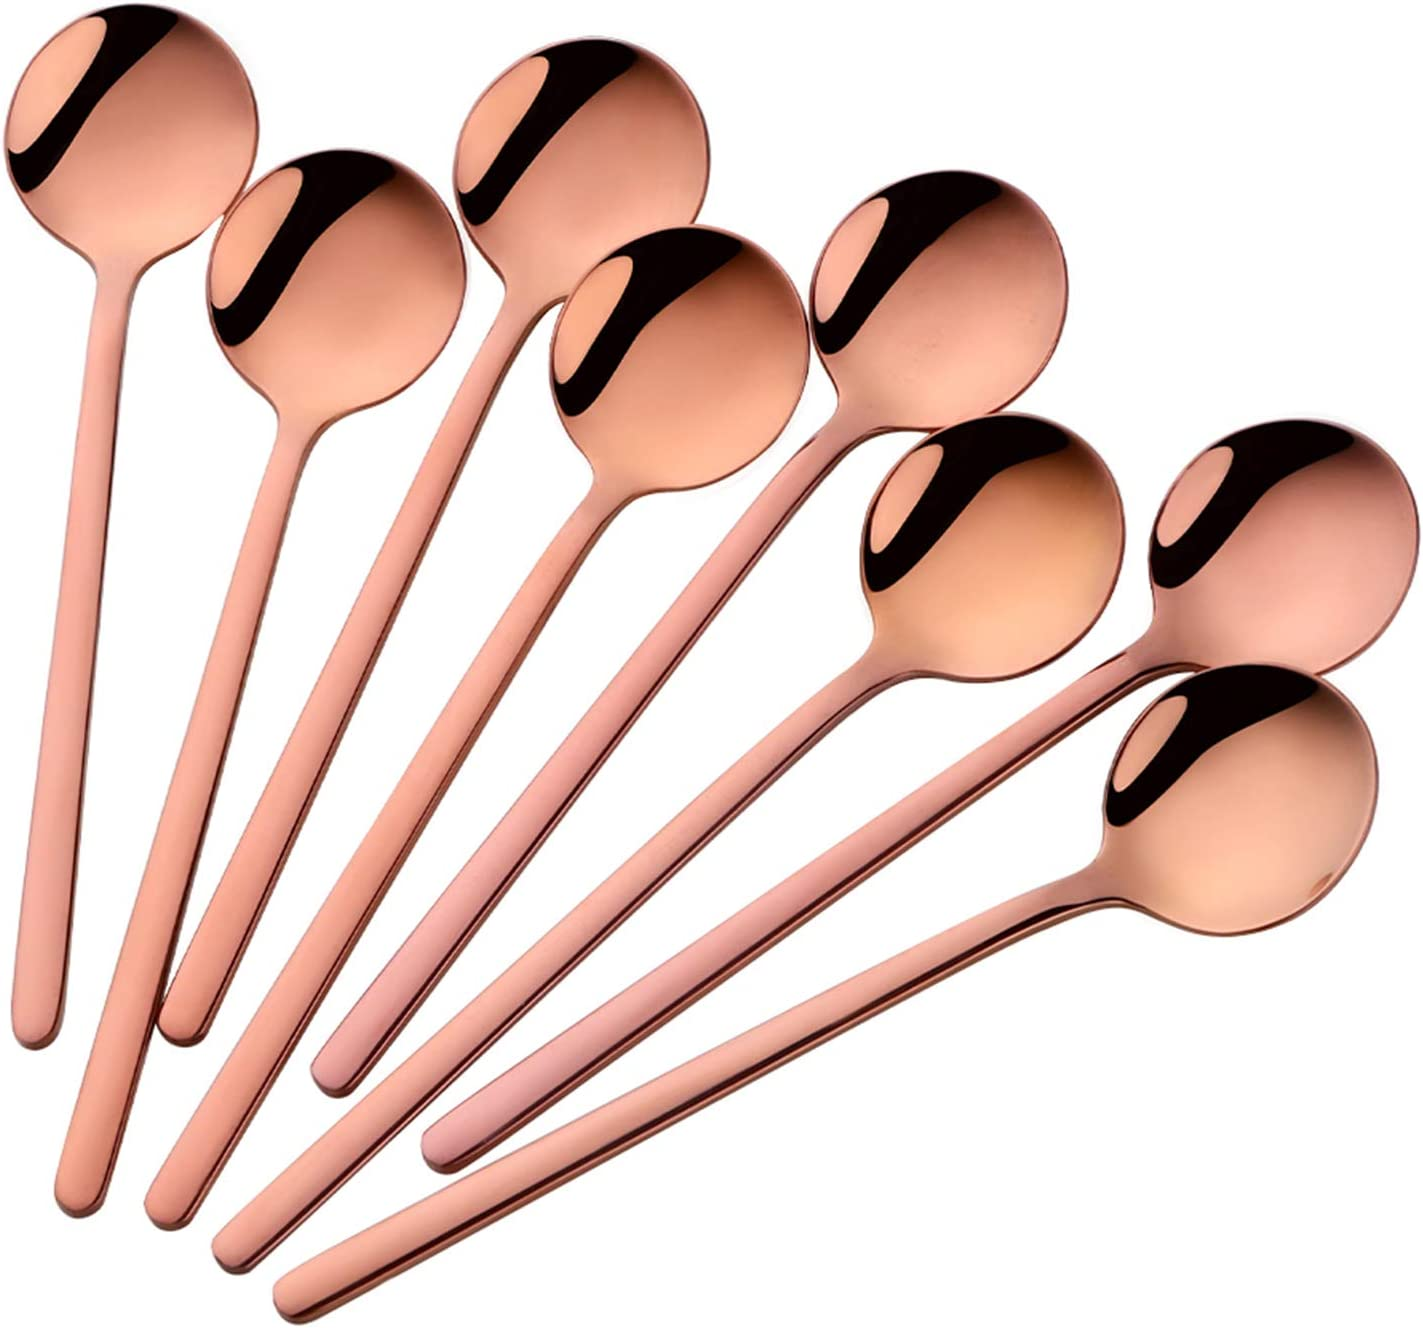 Ranking integrated 1st place Espresso Spoons Set of 8 Poylim 18 Max 90% OFF 10 Small Cute Coffee